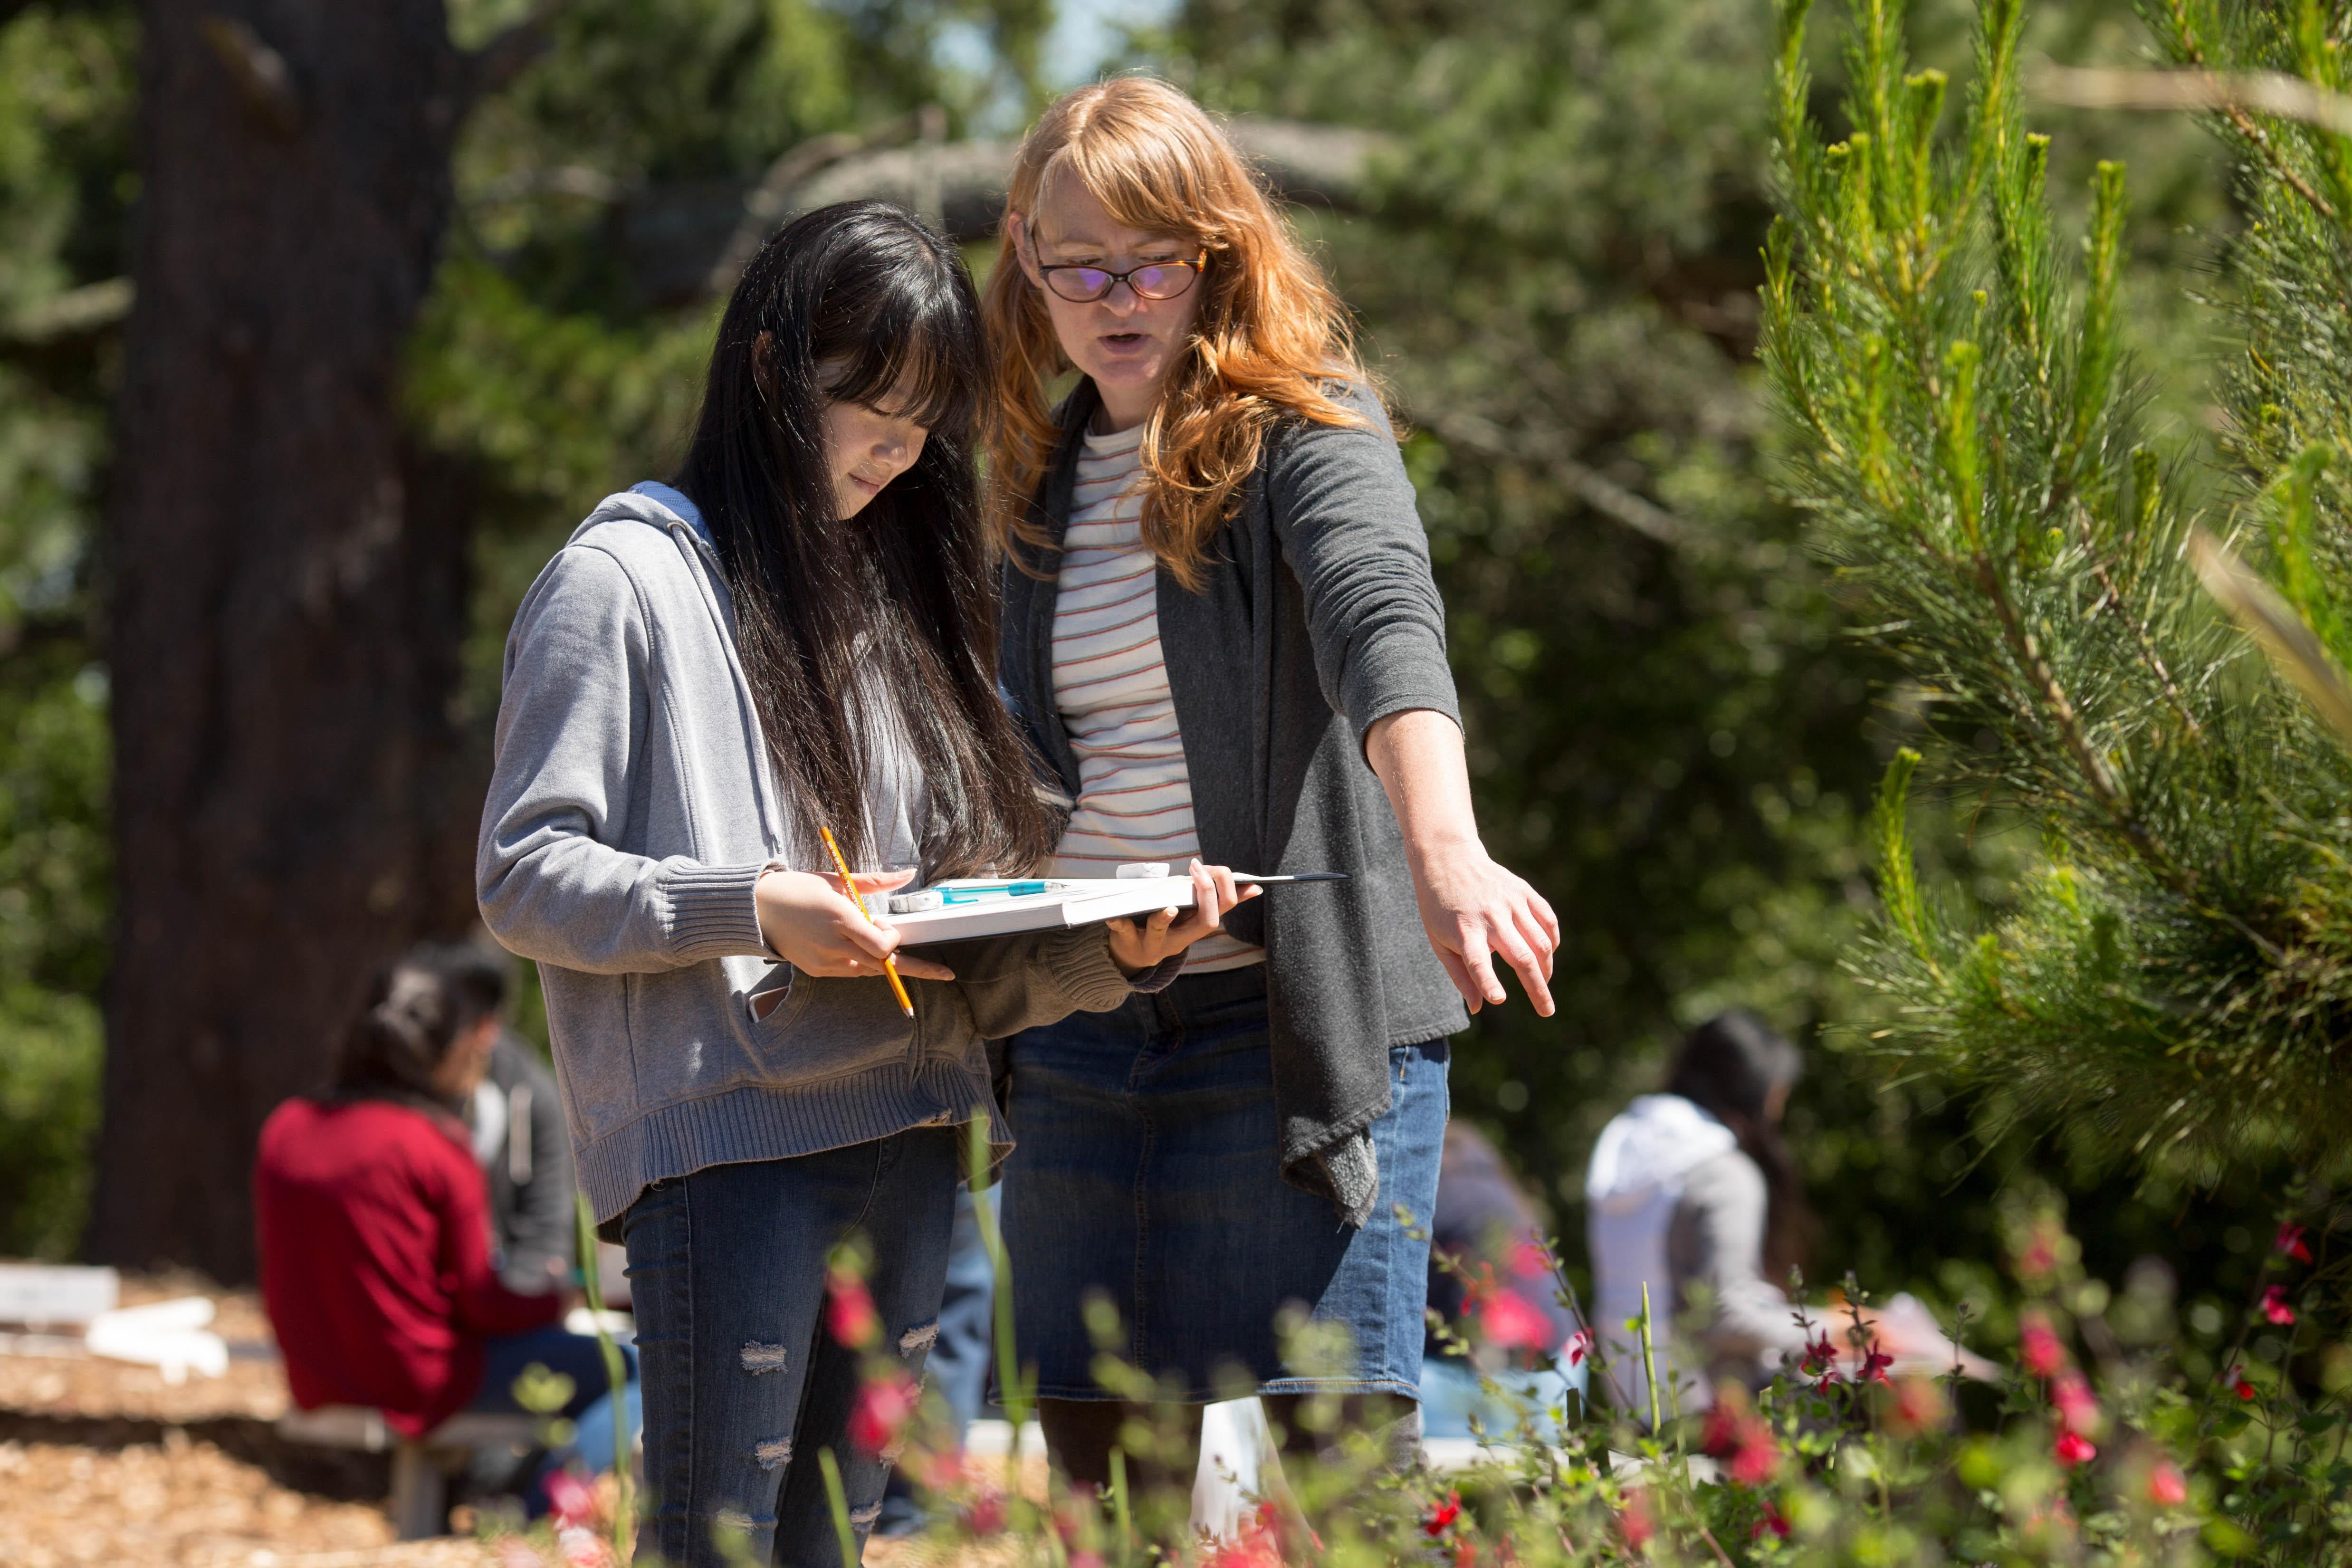 Teacher pointing to garden standing with student